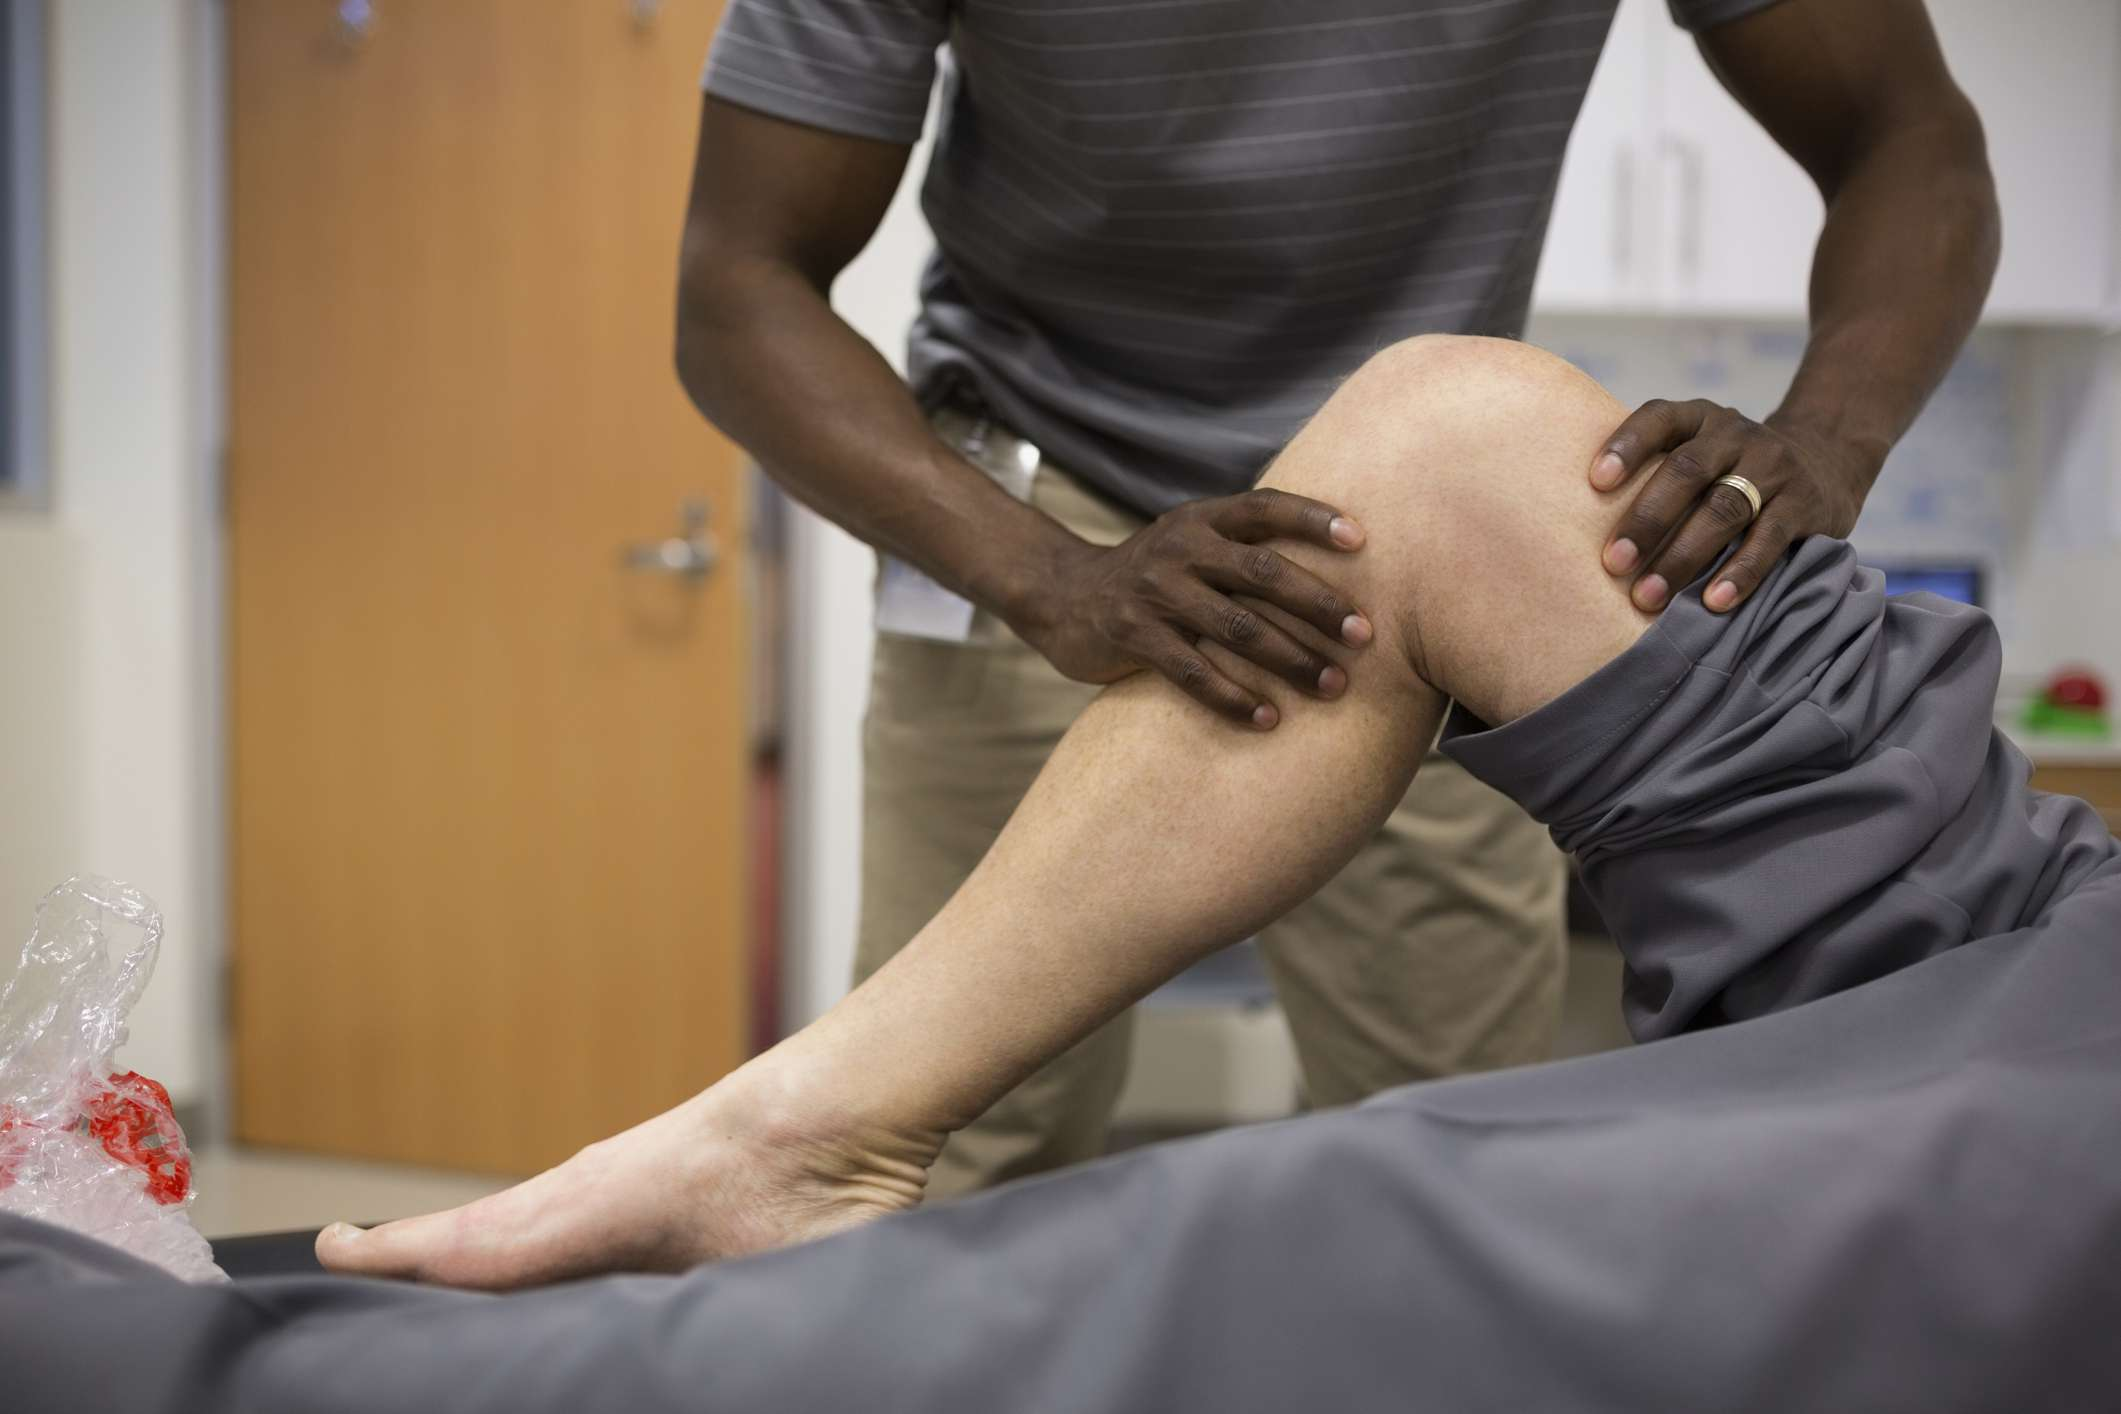 A physical therapist works on a patient's leg